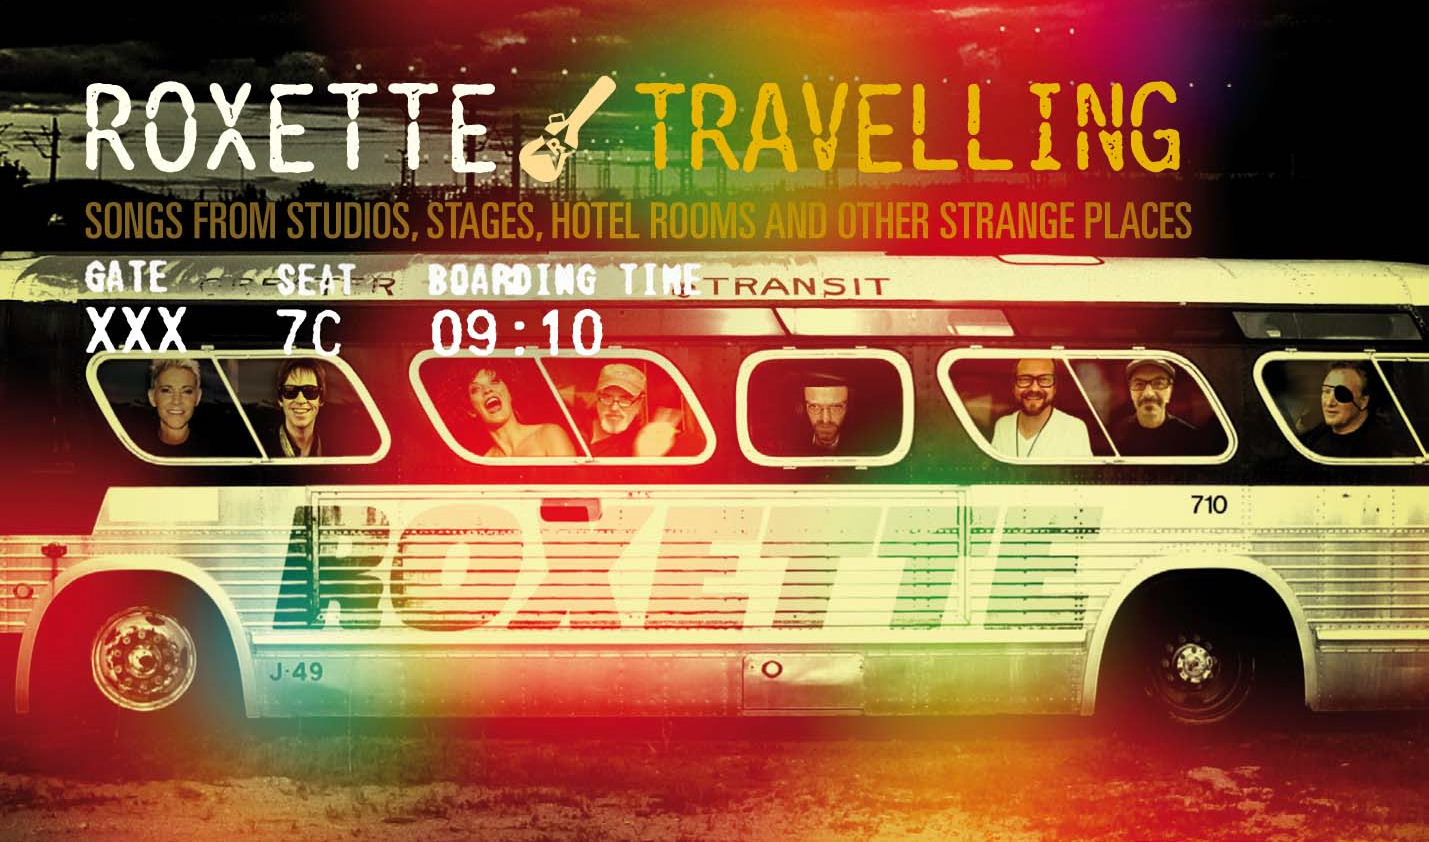 Roxette cover album TRAVELLING